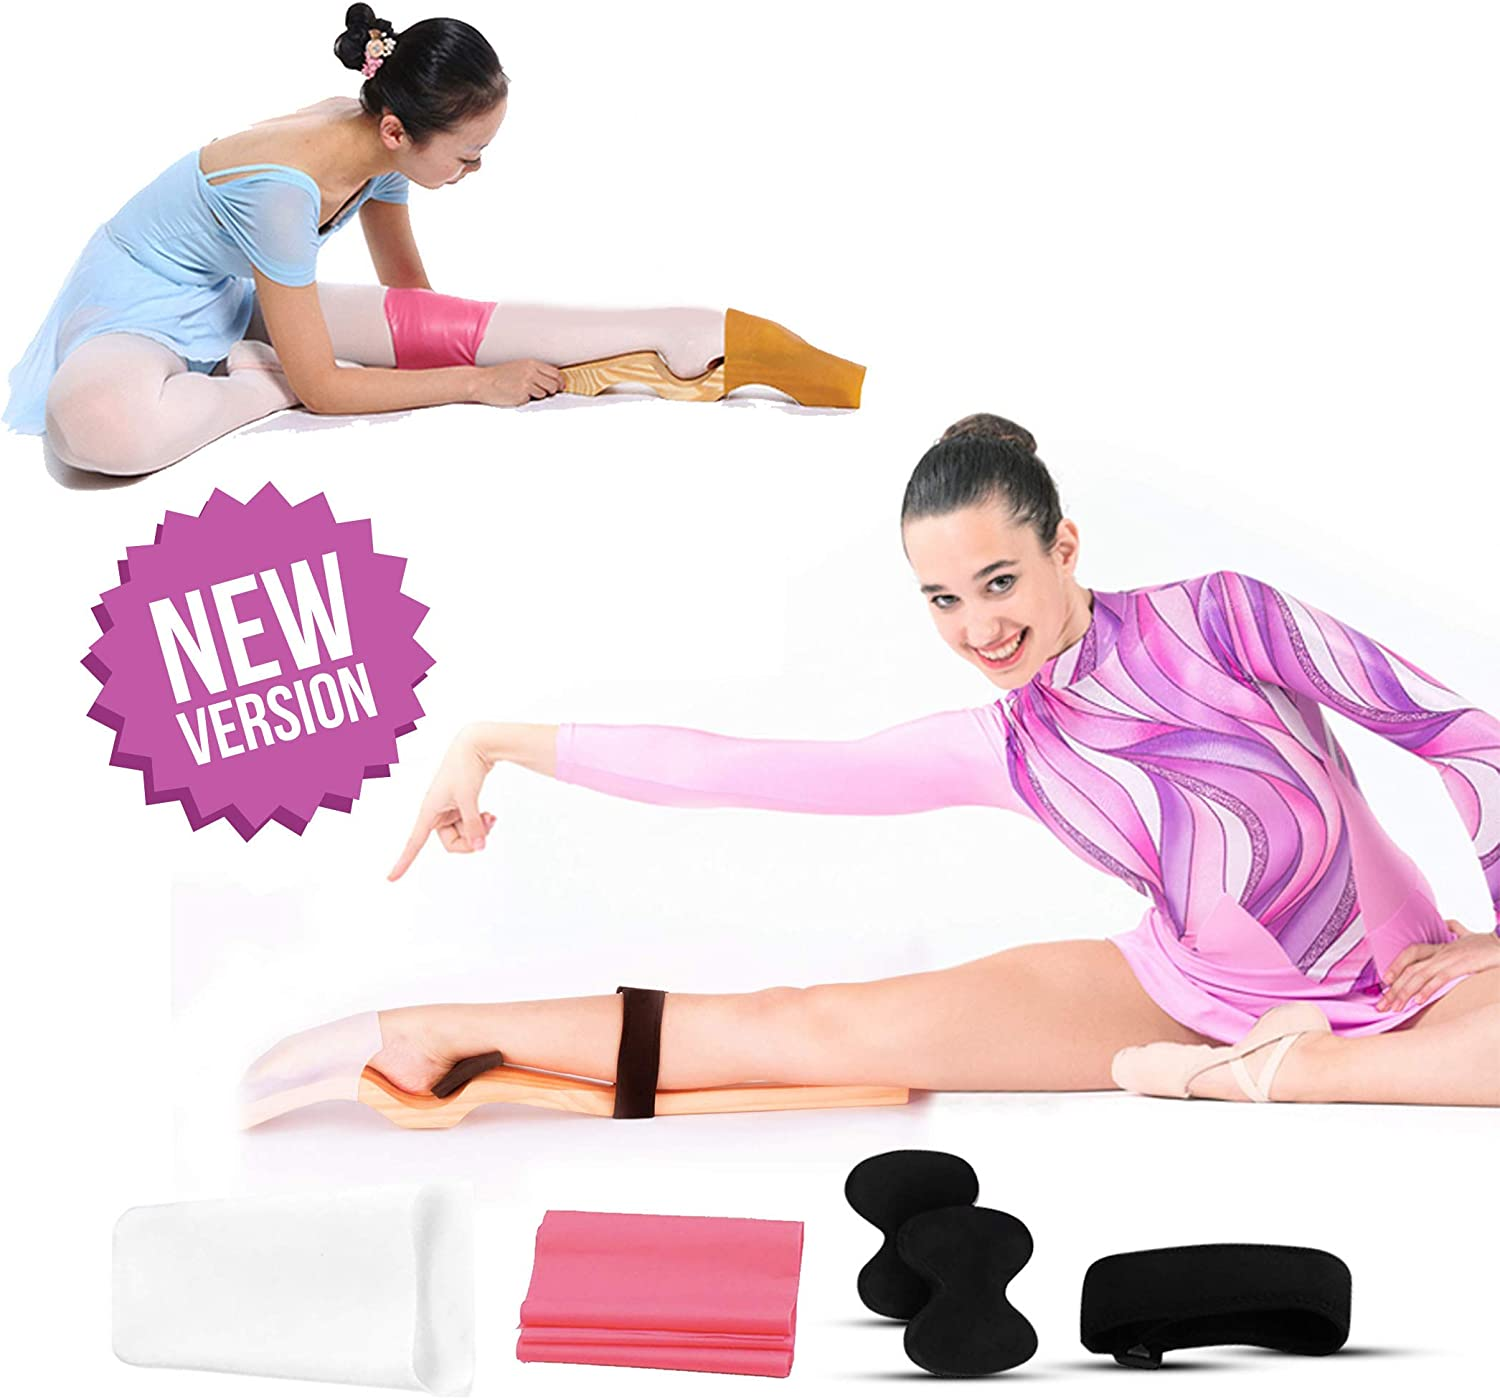 Vbest life Arch Foot Stretcher for Ballet and Gymnastics Leg Stretching ooden Ballet Dance Foot Stretch Stretcher Arch Enhancer with Elastic Band